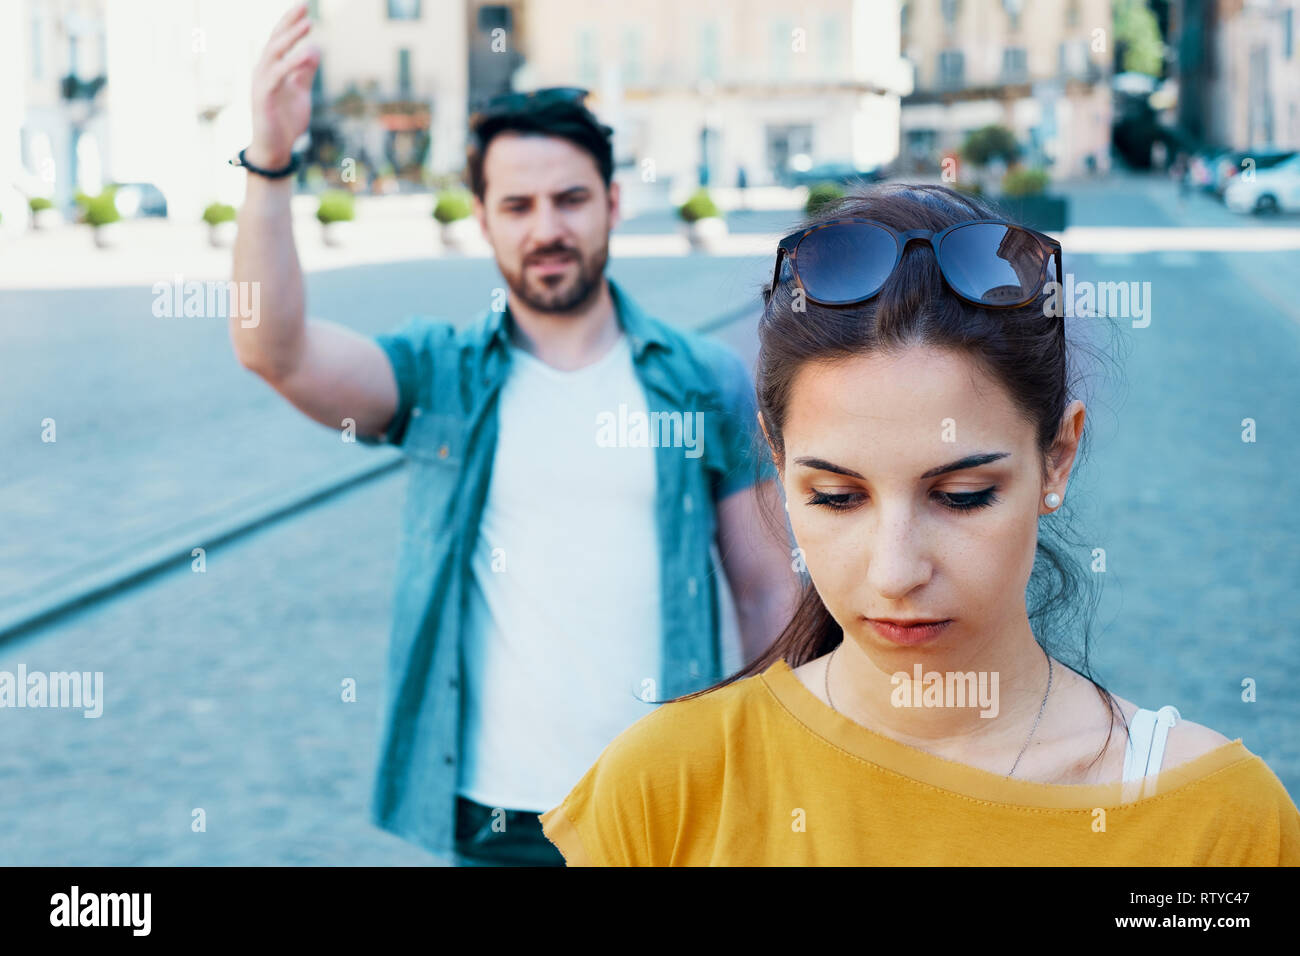 Couple fighting and about relationship problems - Stock Image